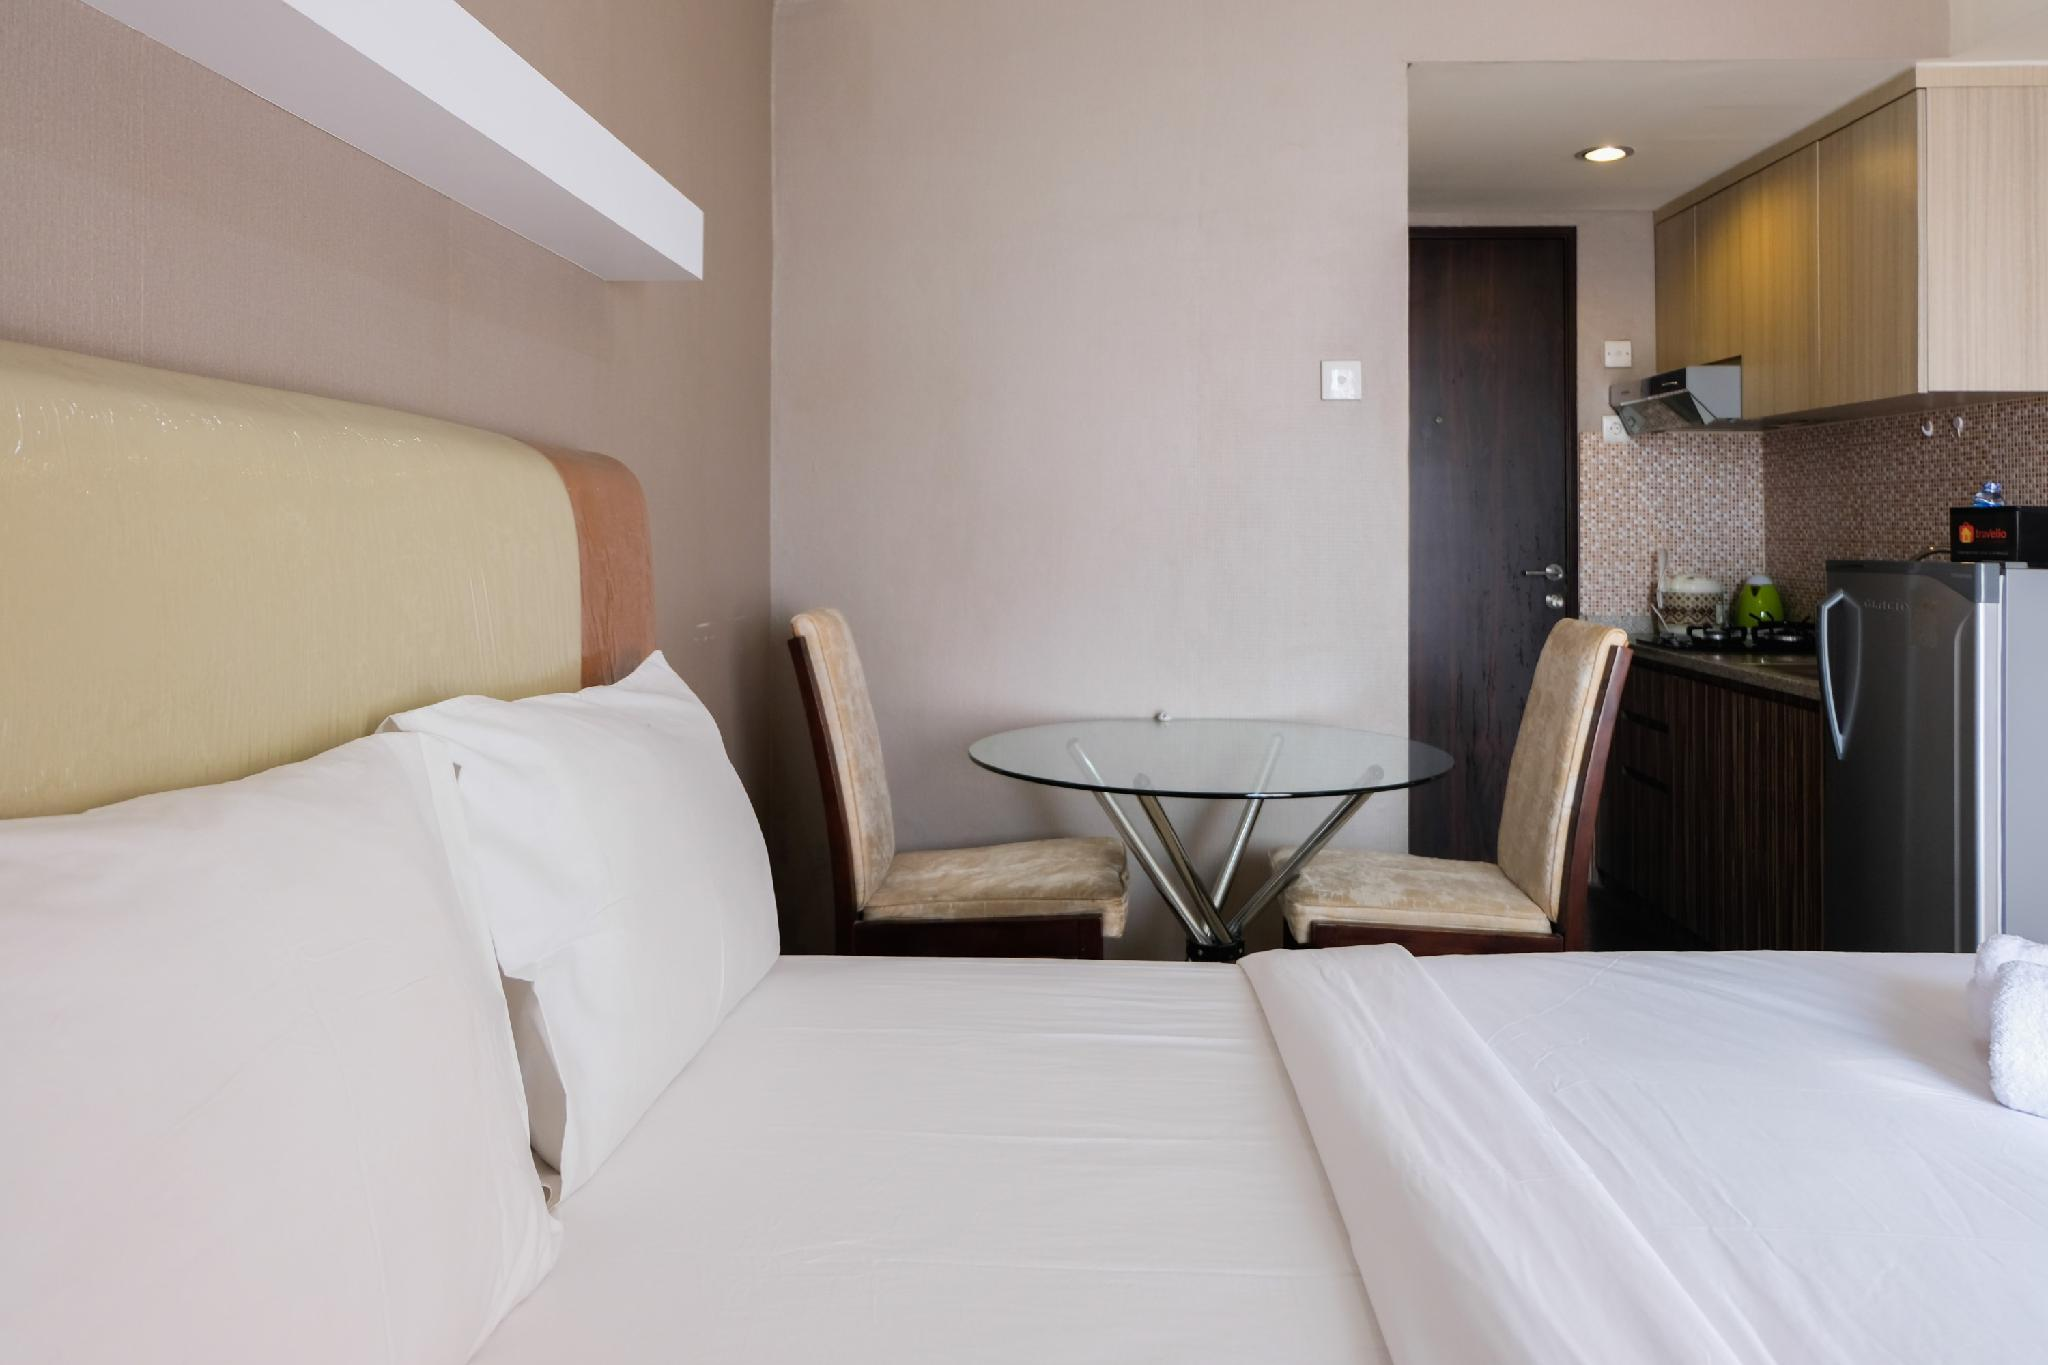 Homey Room At Serpong Greenview Apt By Travelio